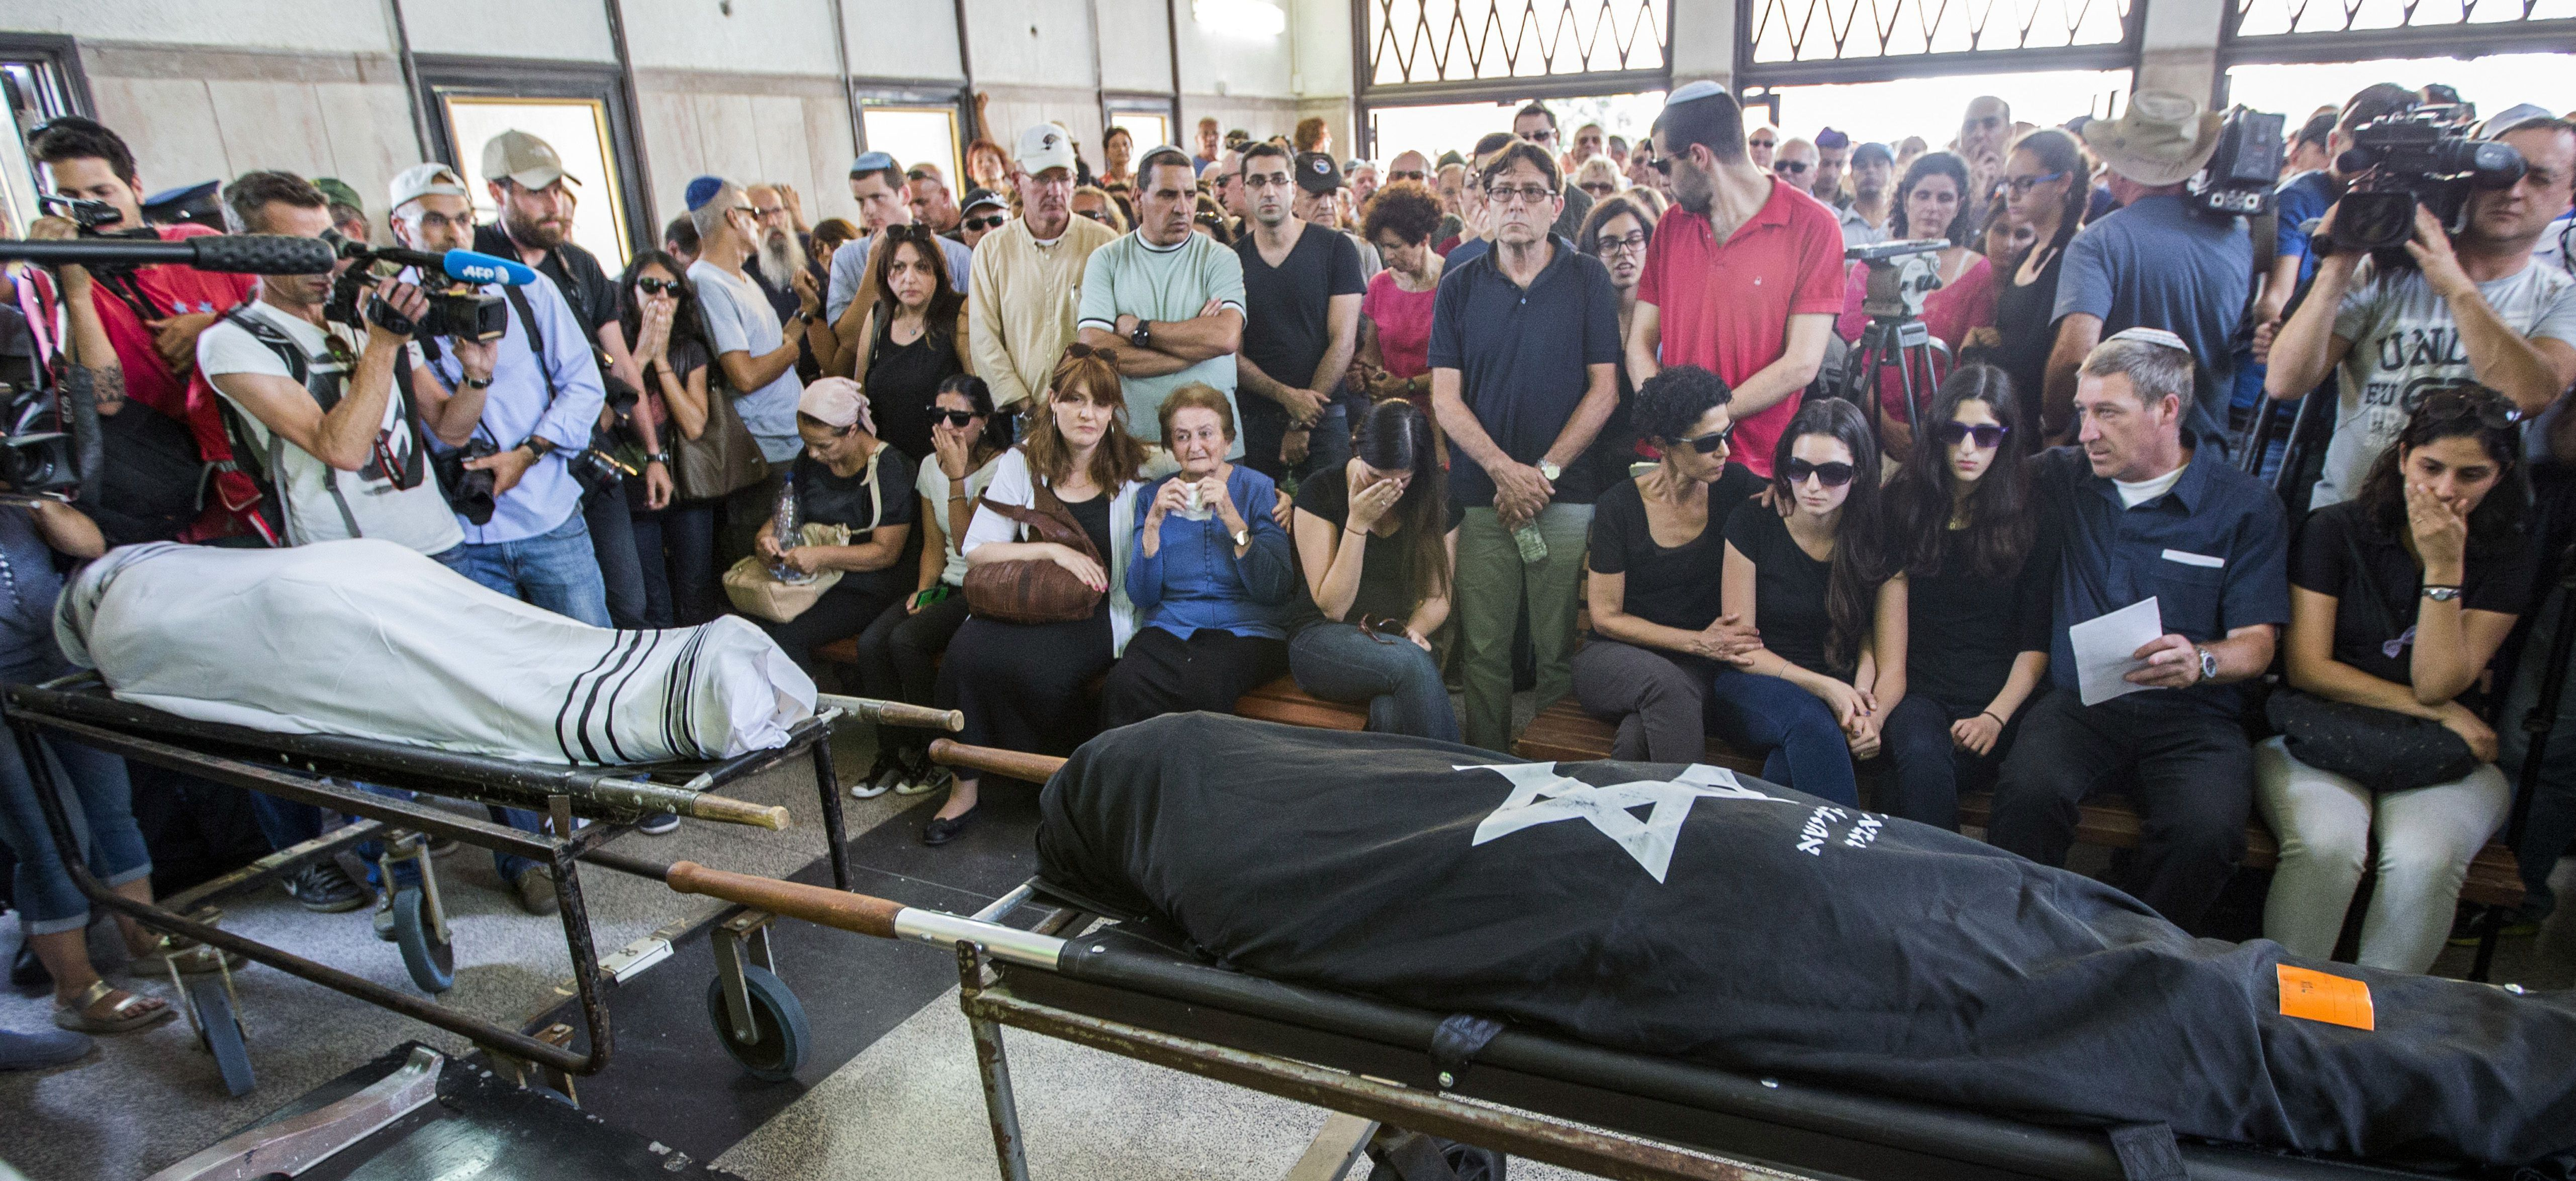 Relatives mourn over the bodies of Emanuel (L) and Miriam Riva (R), who were killed during the shooting attack at the Jewish Museum in the Belgian capital Brussels, during their funeral in Kyriat Shaul cemetery, Tel Aviv, on May 27, 2014.